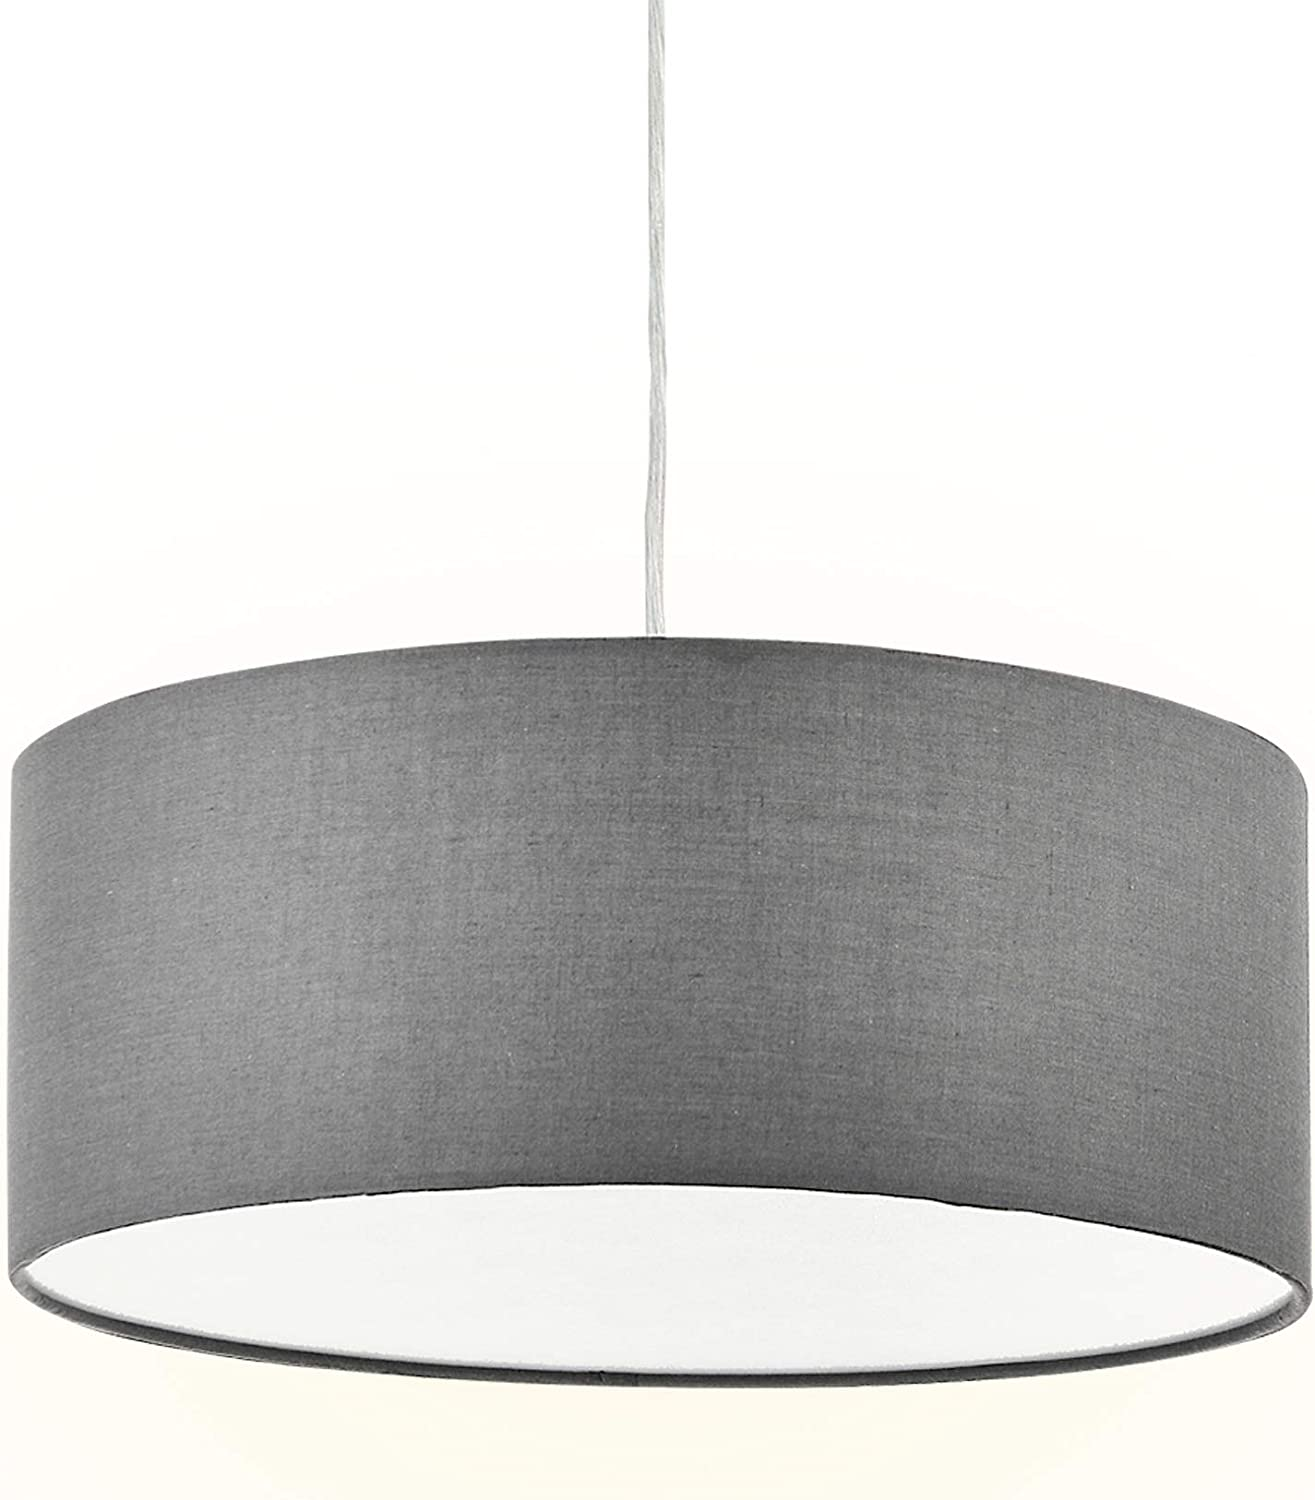 """Modern Fabric Pendant Light, 15"""" Classic 3-Light Drum Ceiling Chandelier, Grey Drum Shade, Round Frosted Plastic Diffuser, 3 Bulb, E26"""